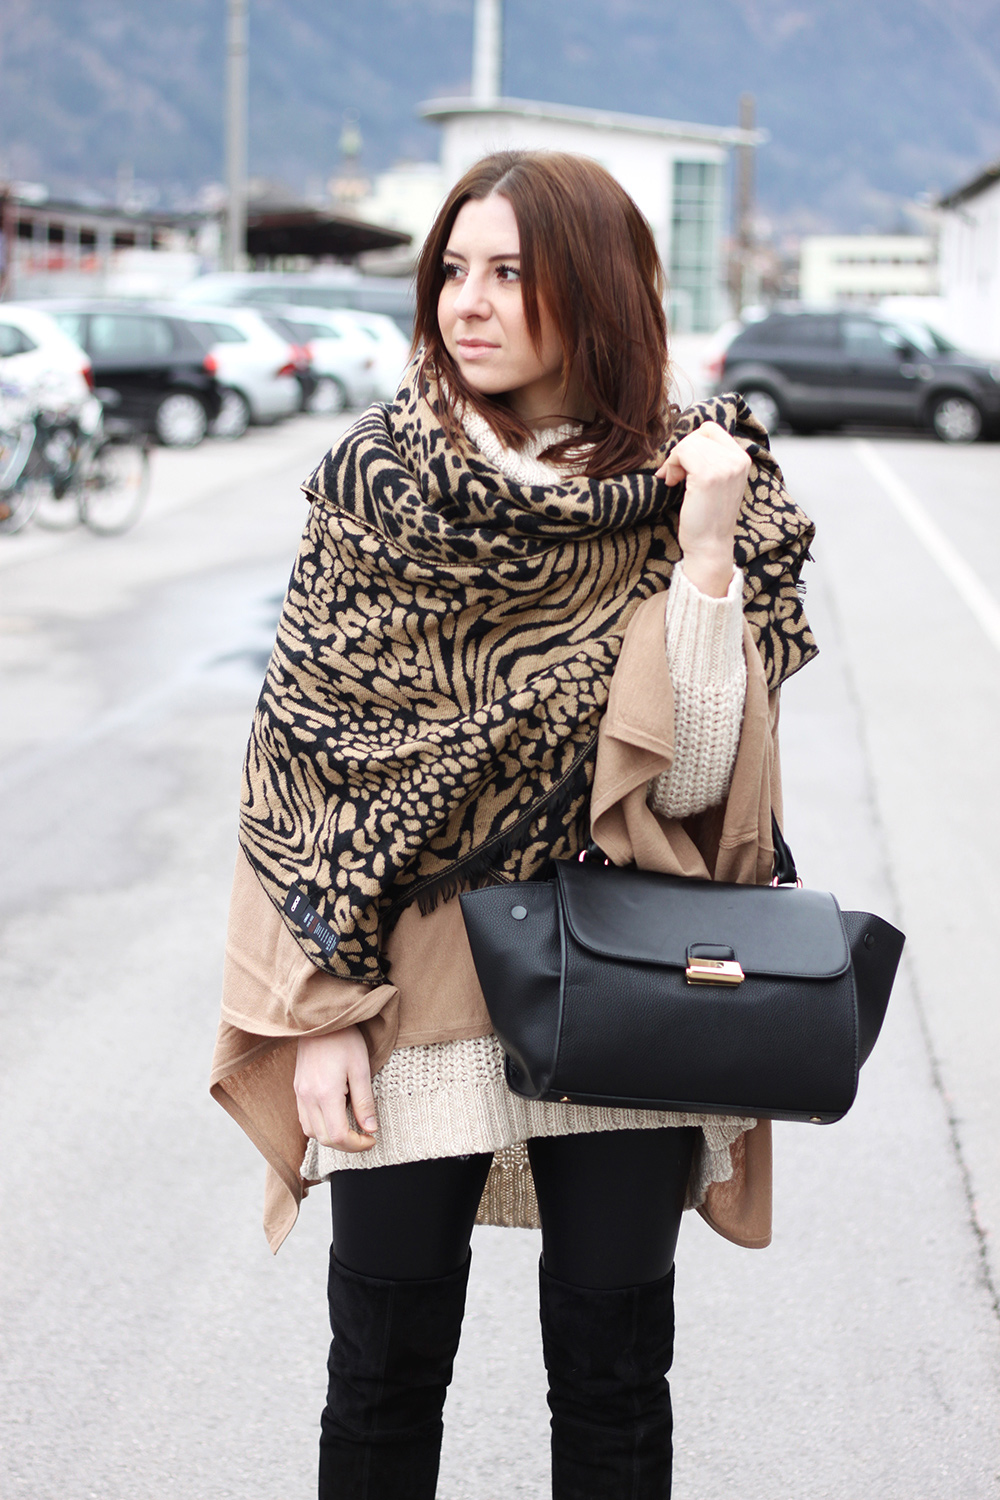 who is mocca, fashionblog, tirol, tirolerin, leopard, animal print, oversize, layering, cape, poncho, ponchocompany, strick, rollkragen, trapez bag, overknee stiefel, whoismcoca.com